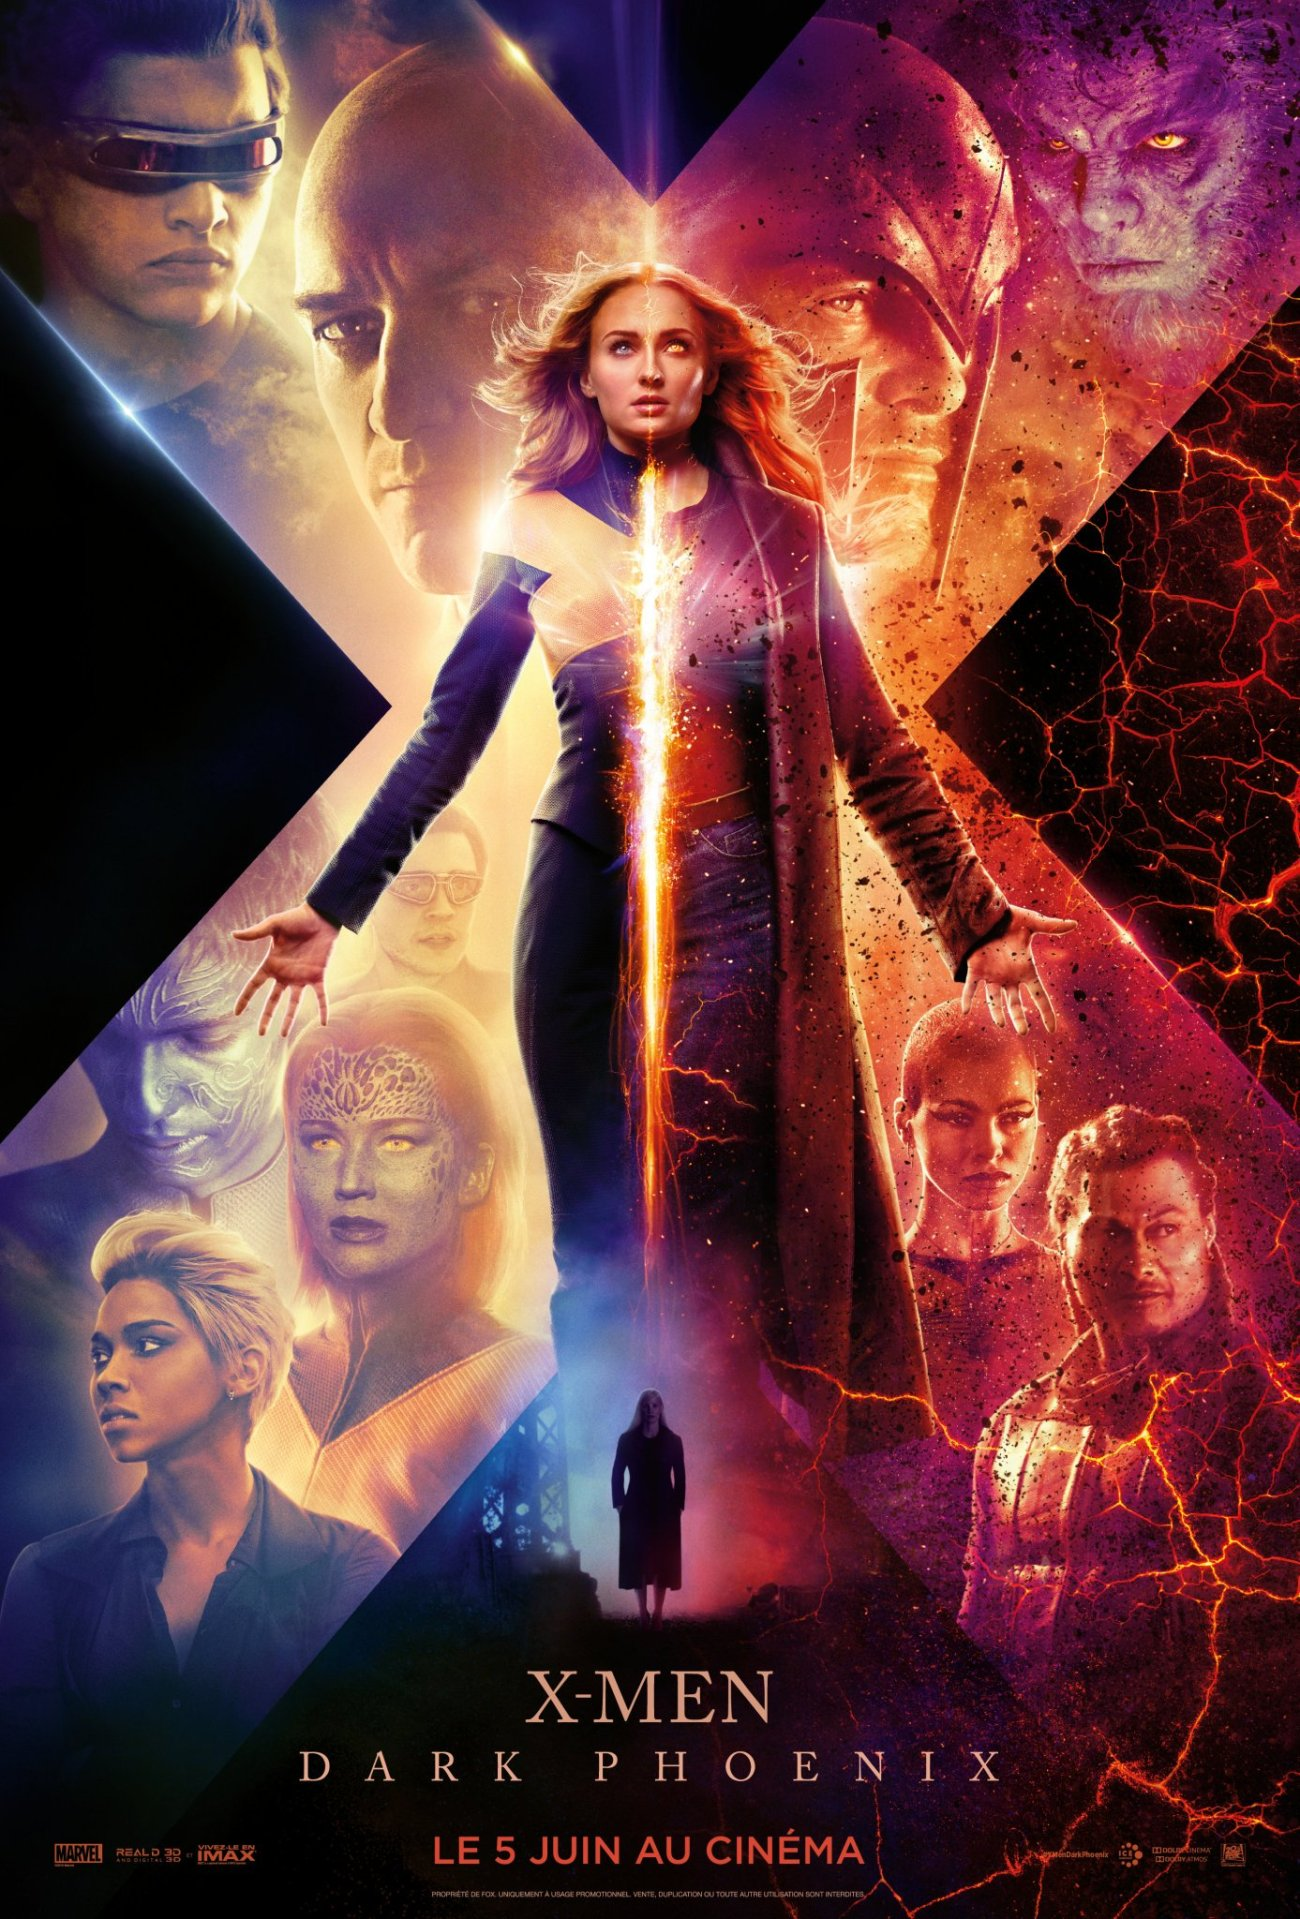 XMenDarkPhoenix-affiche-cliff-and-co